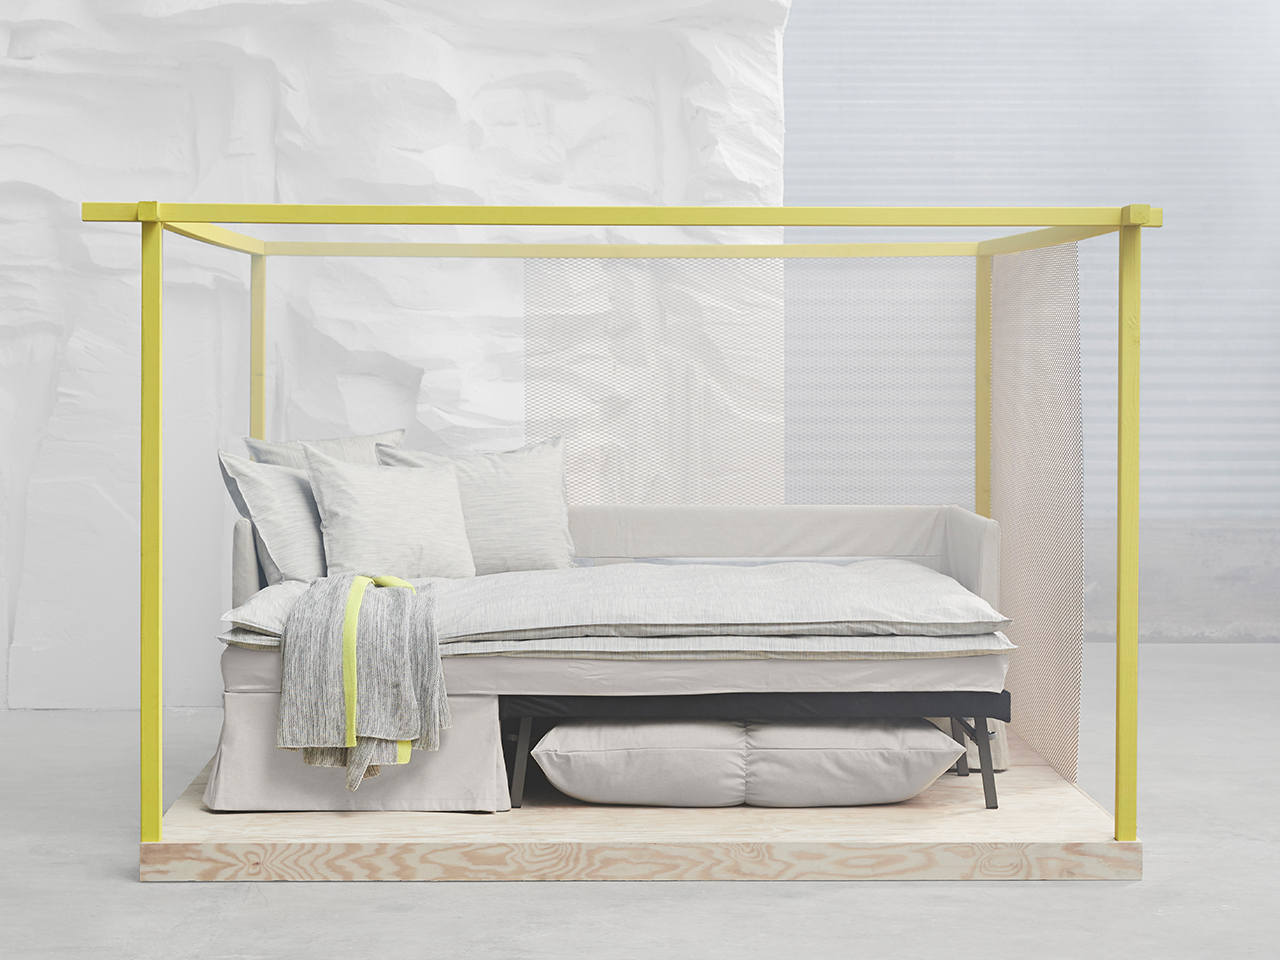 Sofabett ikea  The 13 Best Finds From Ikea's New Fall Line - Chatelaine